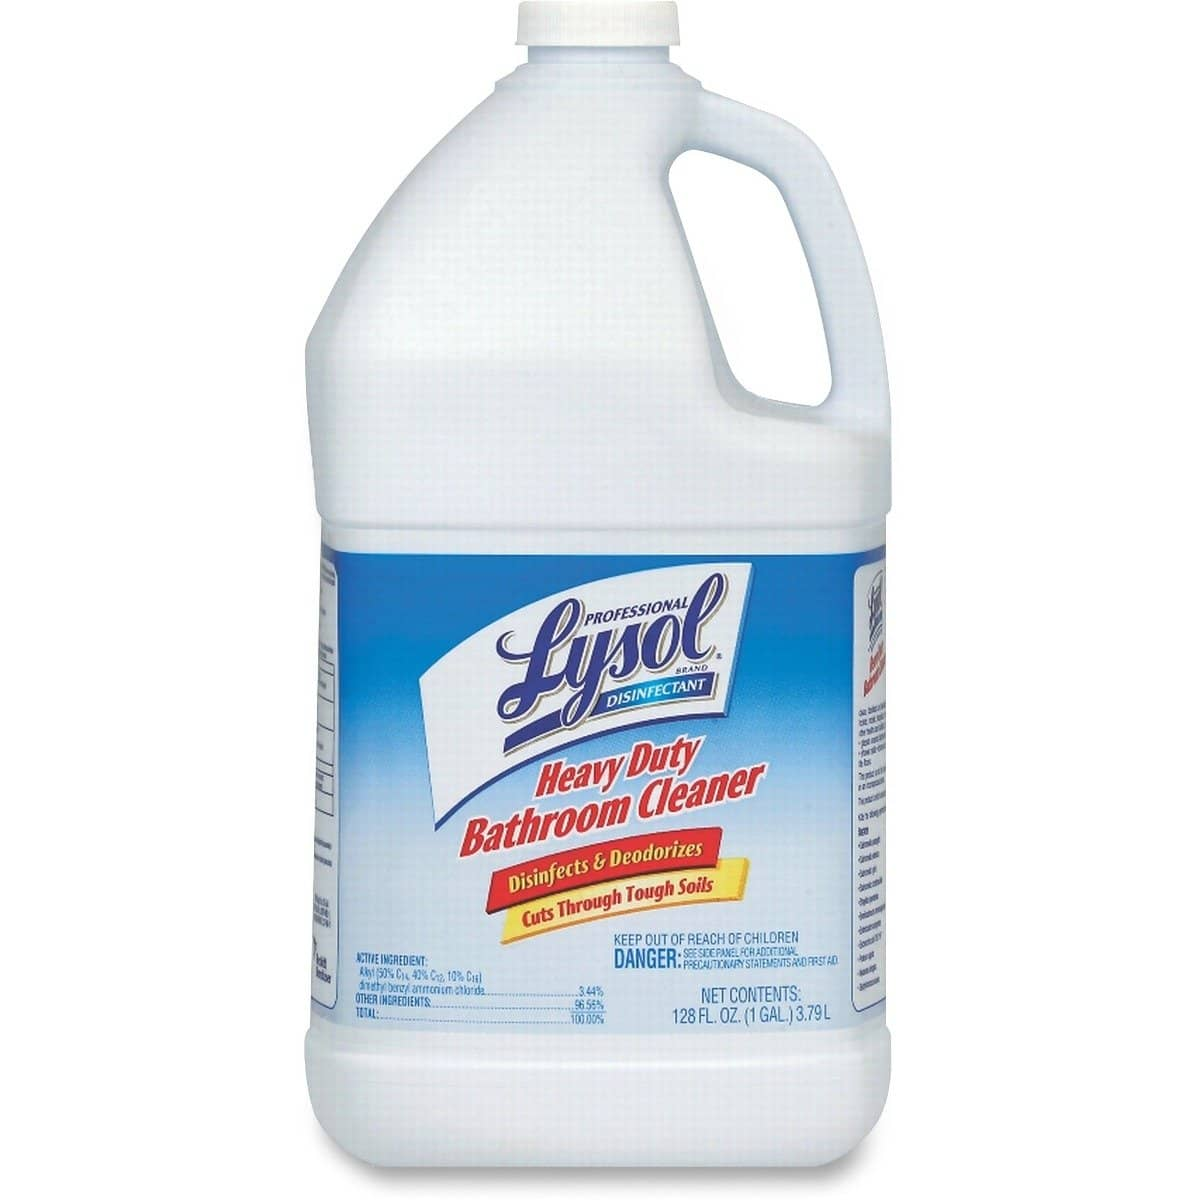 COVID Small Business Mega Pack Lysol Disinfectants, Clorox Wipes & Soap, Virex, 3 Ply Masks, and More - TotalRestroom.com